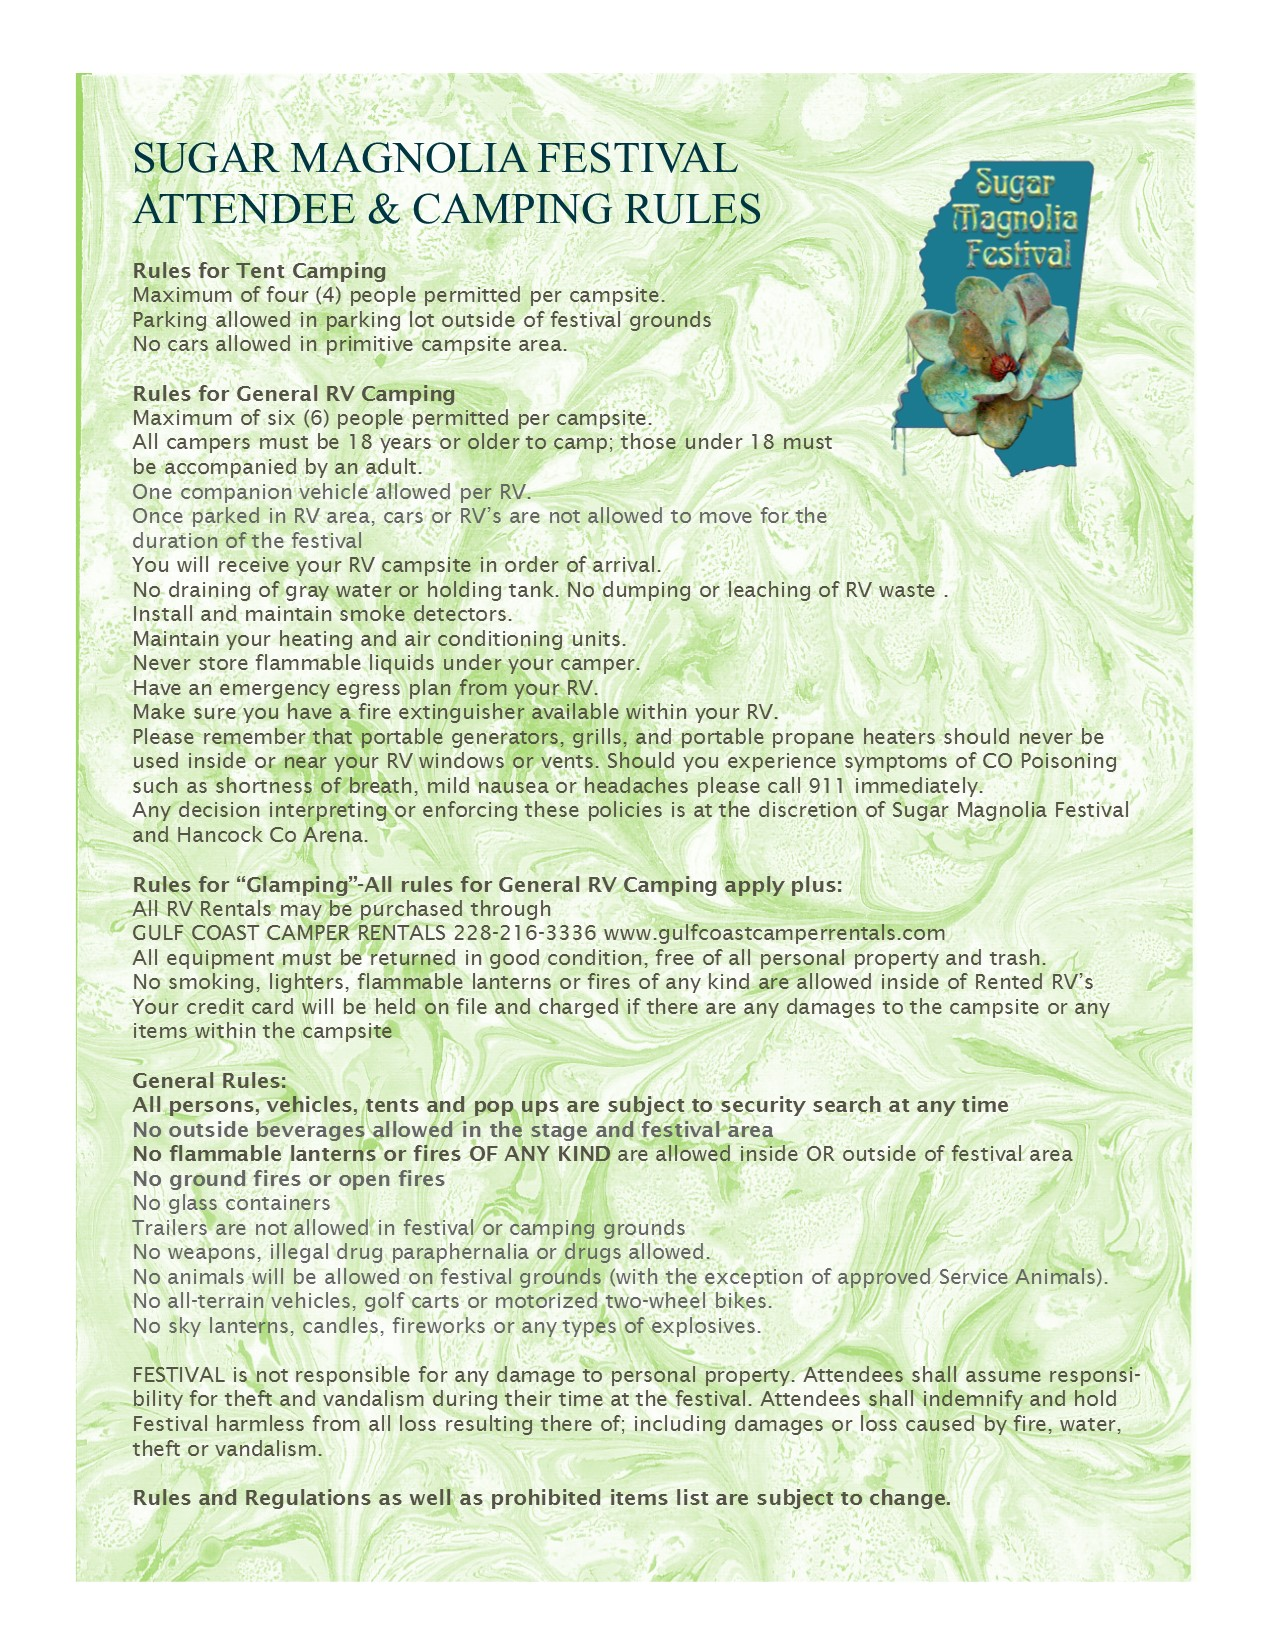 Camping Rules and Regulations.jpg